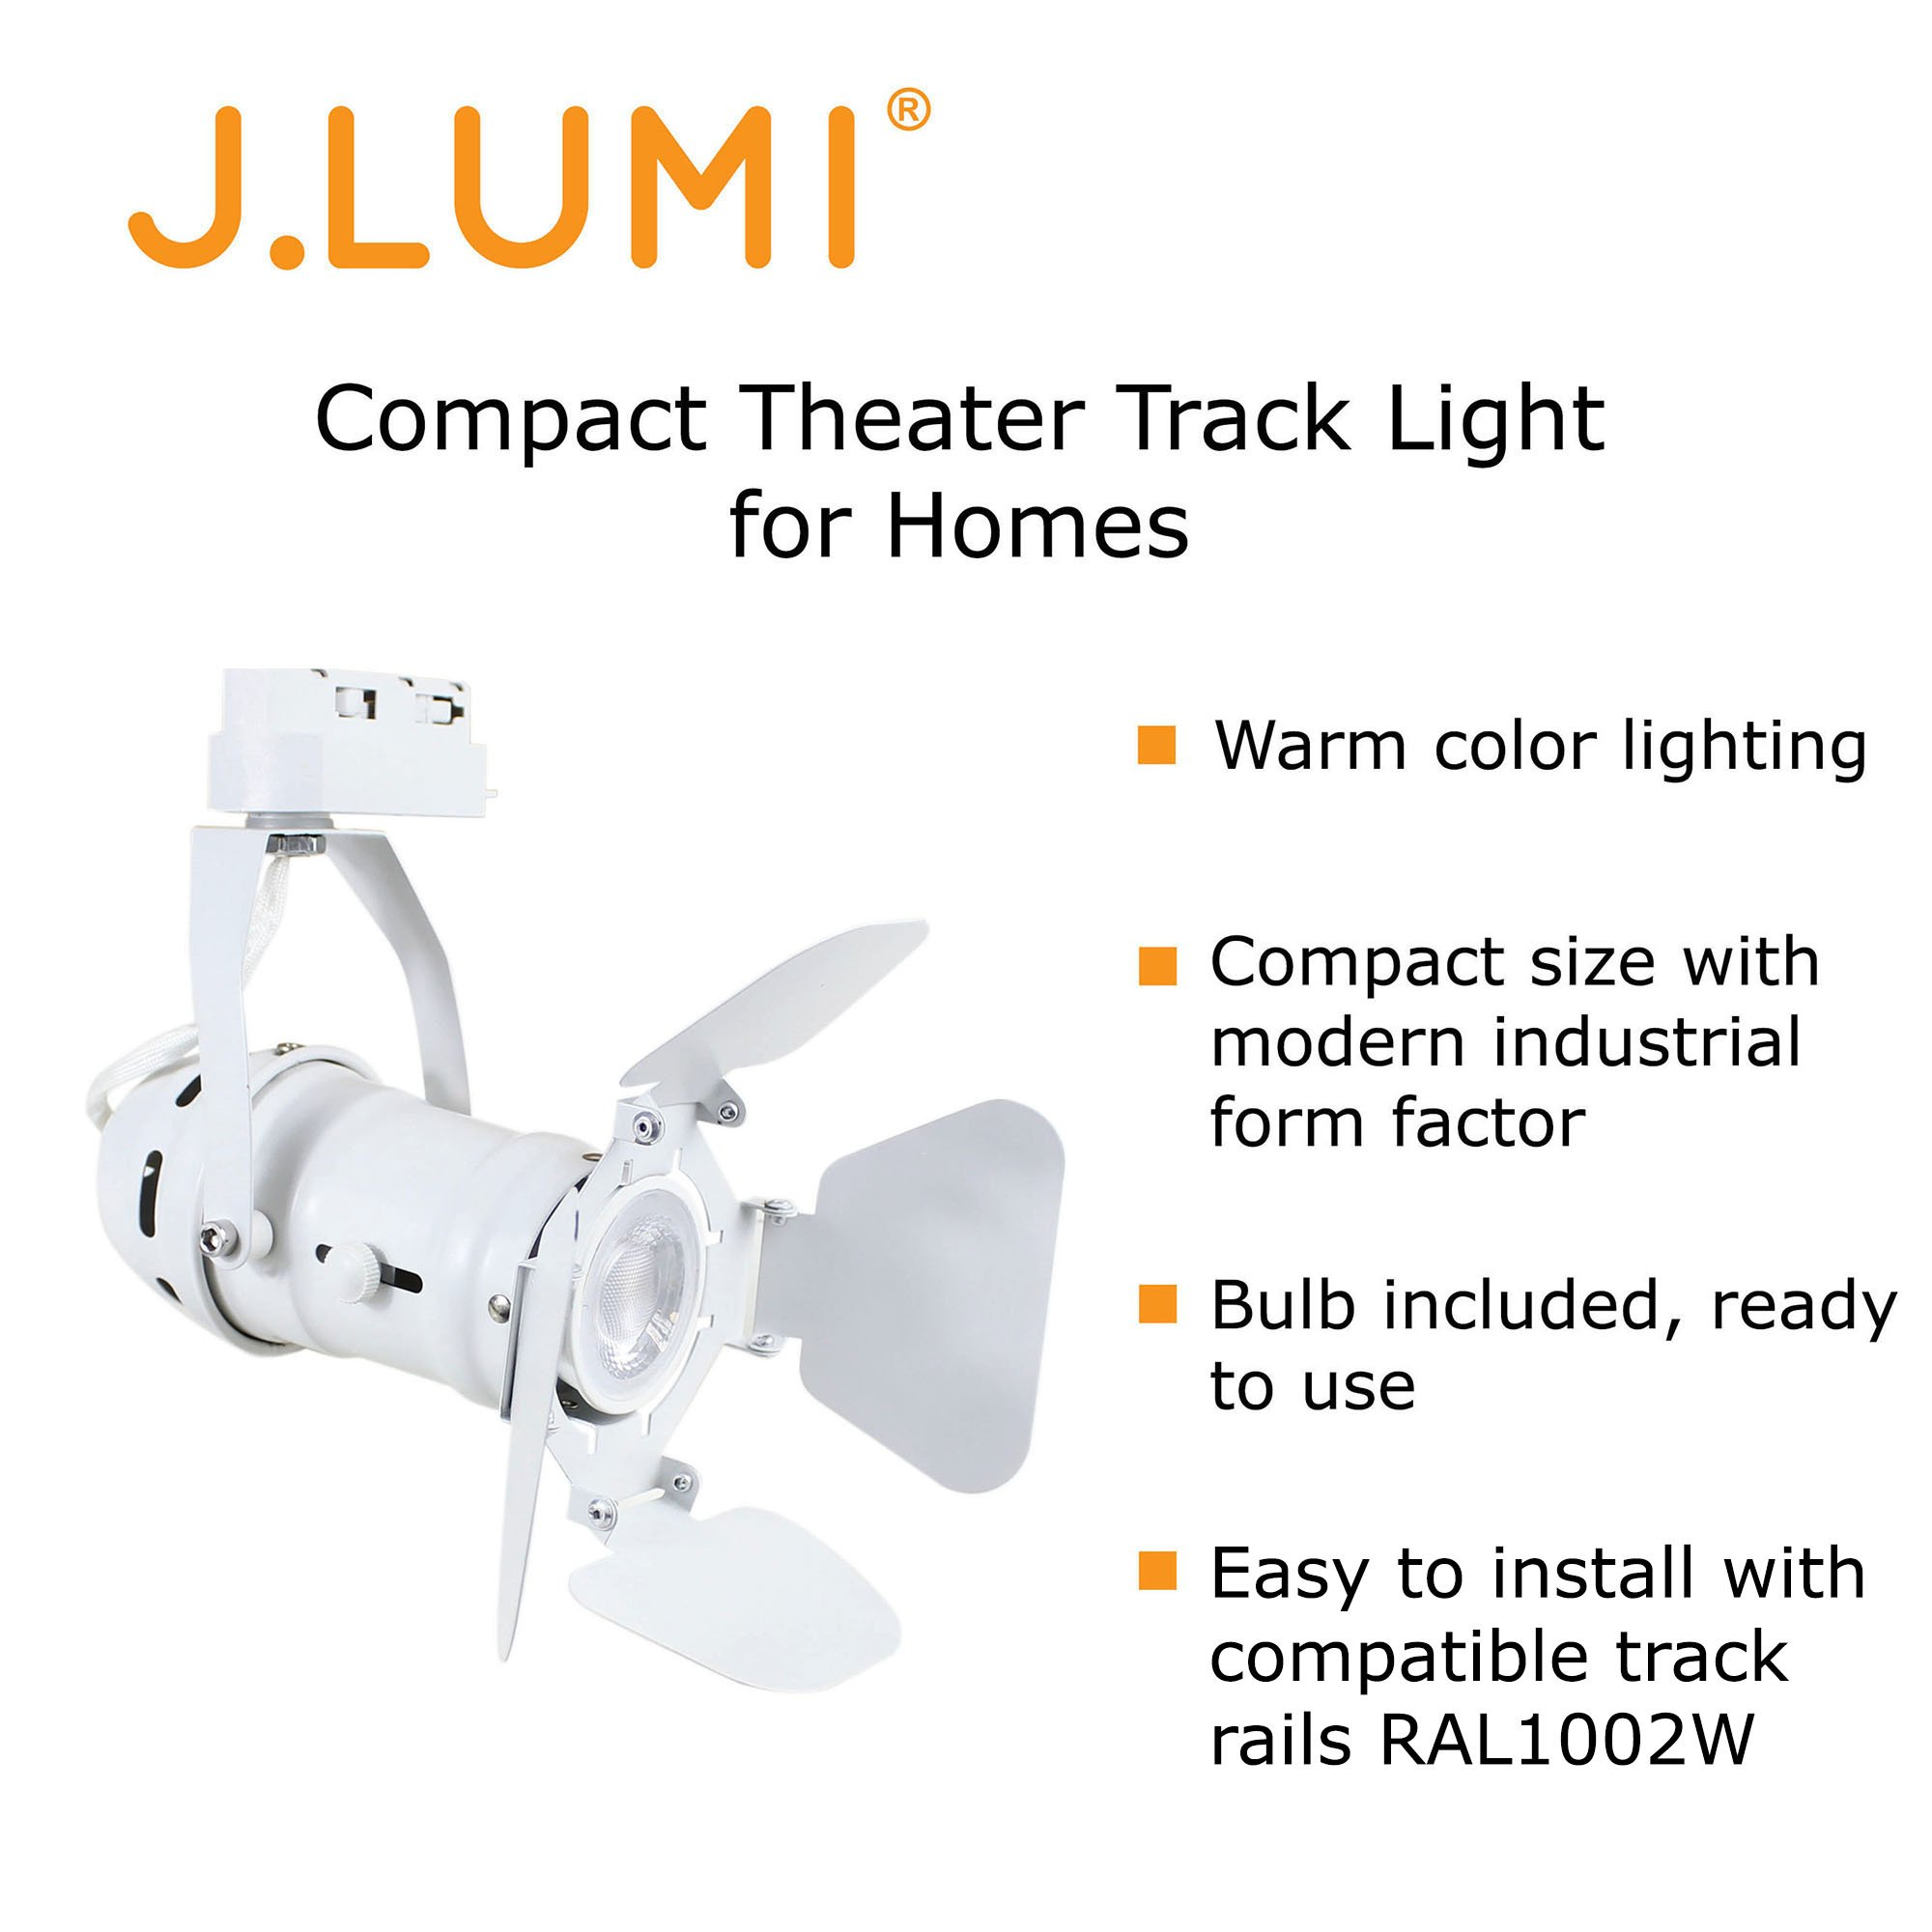 J.LUMI TRK9600W LED Track Light Fixture, Includes LED 5W Bulb | Vintage Mini Spotlight | Adjustable Tilt Angle, White Paint Finish | Compatible Rail RAL1002W (not Included) by J.LUMI (Image #2)